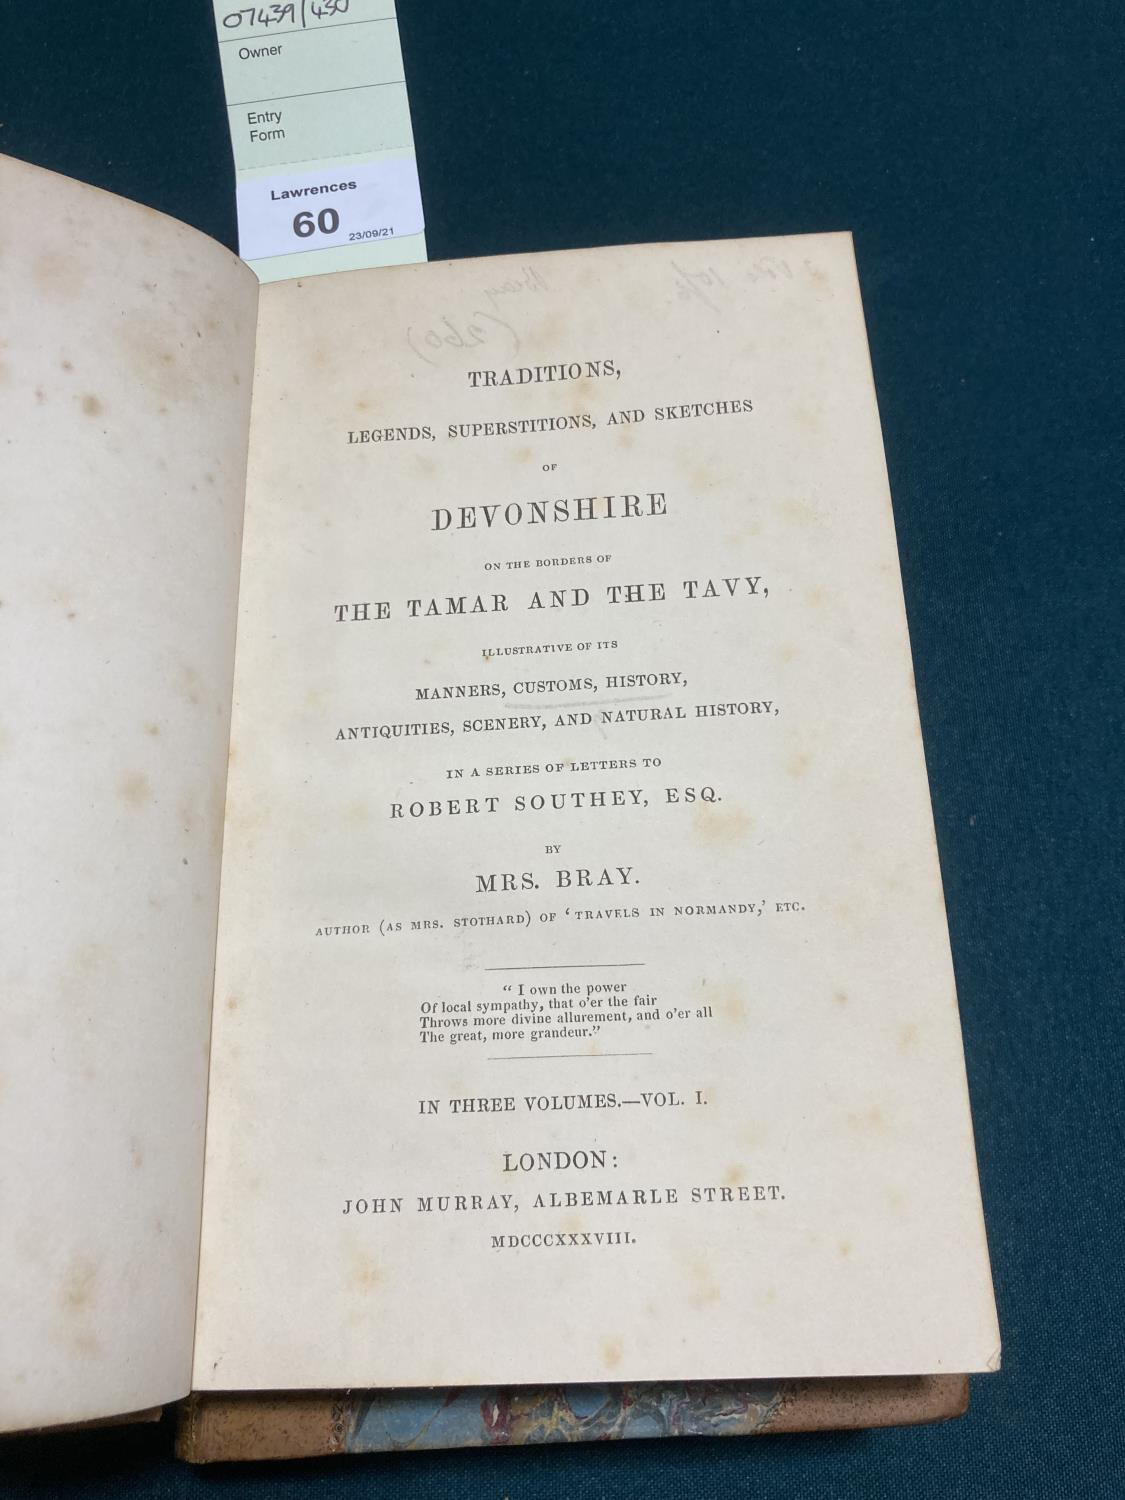 Bray, Anna Eliza Stothard. Traditions, Legends, Superstitions, and Sketches of Devonshire... in a - Image 2 of 4